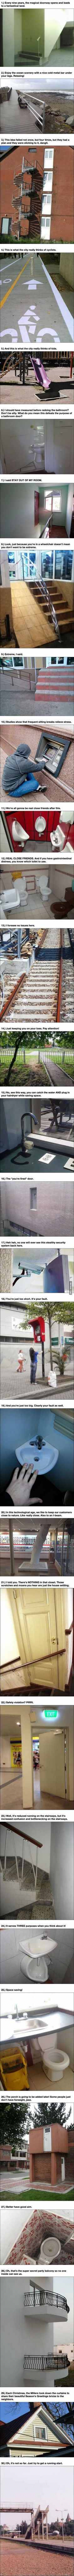 Amazingly Stupid Construction Ideas That No One Seemed to Object To